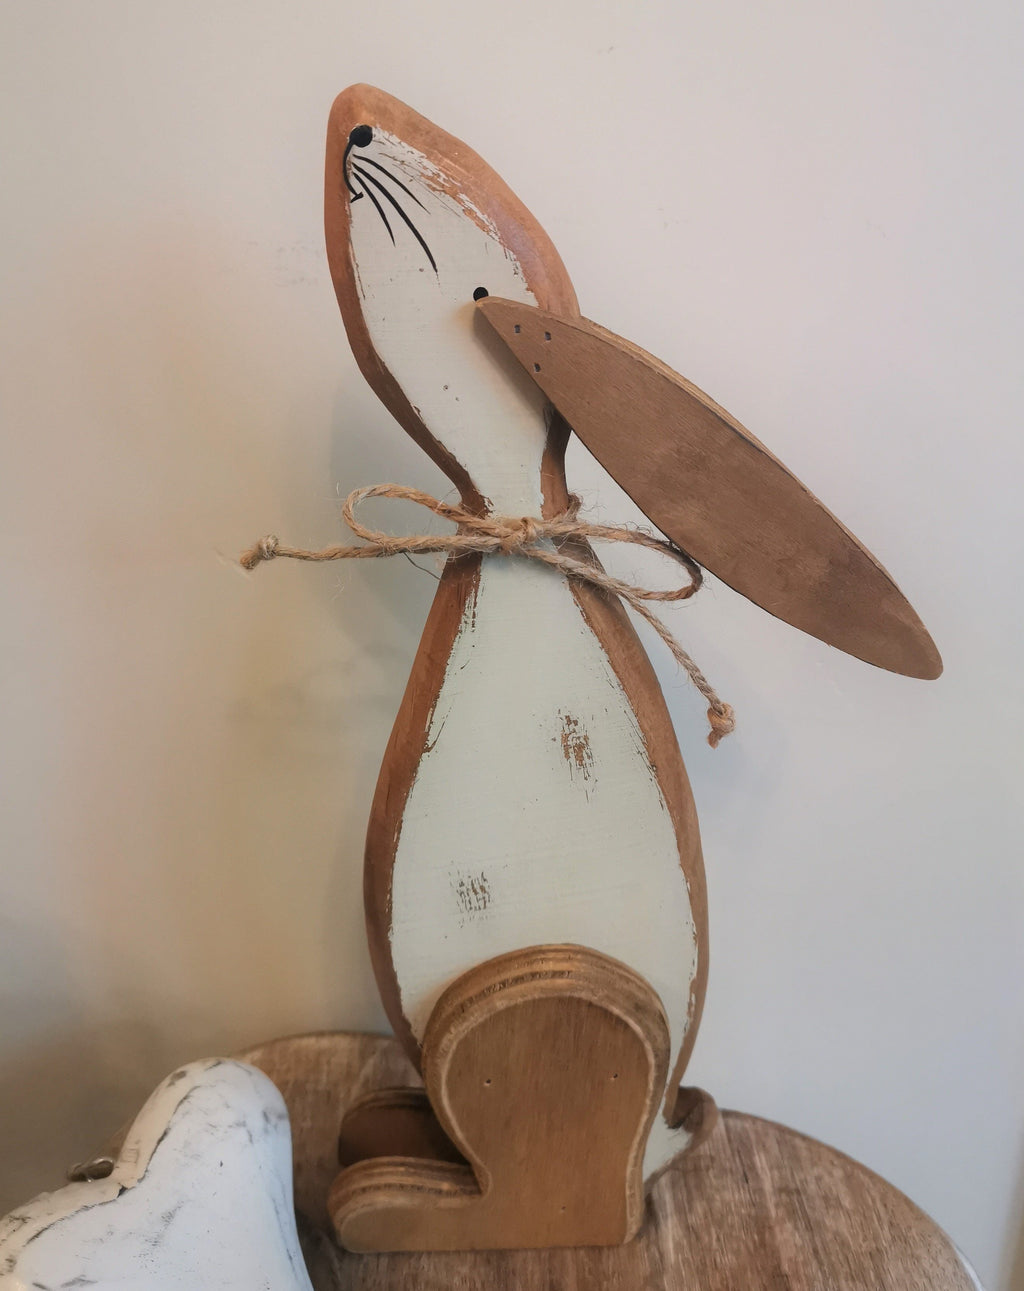 Wooden Rabbit Decor - The Burrow Interiors